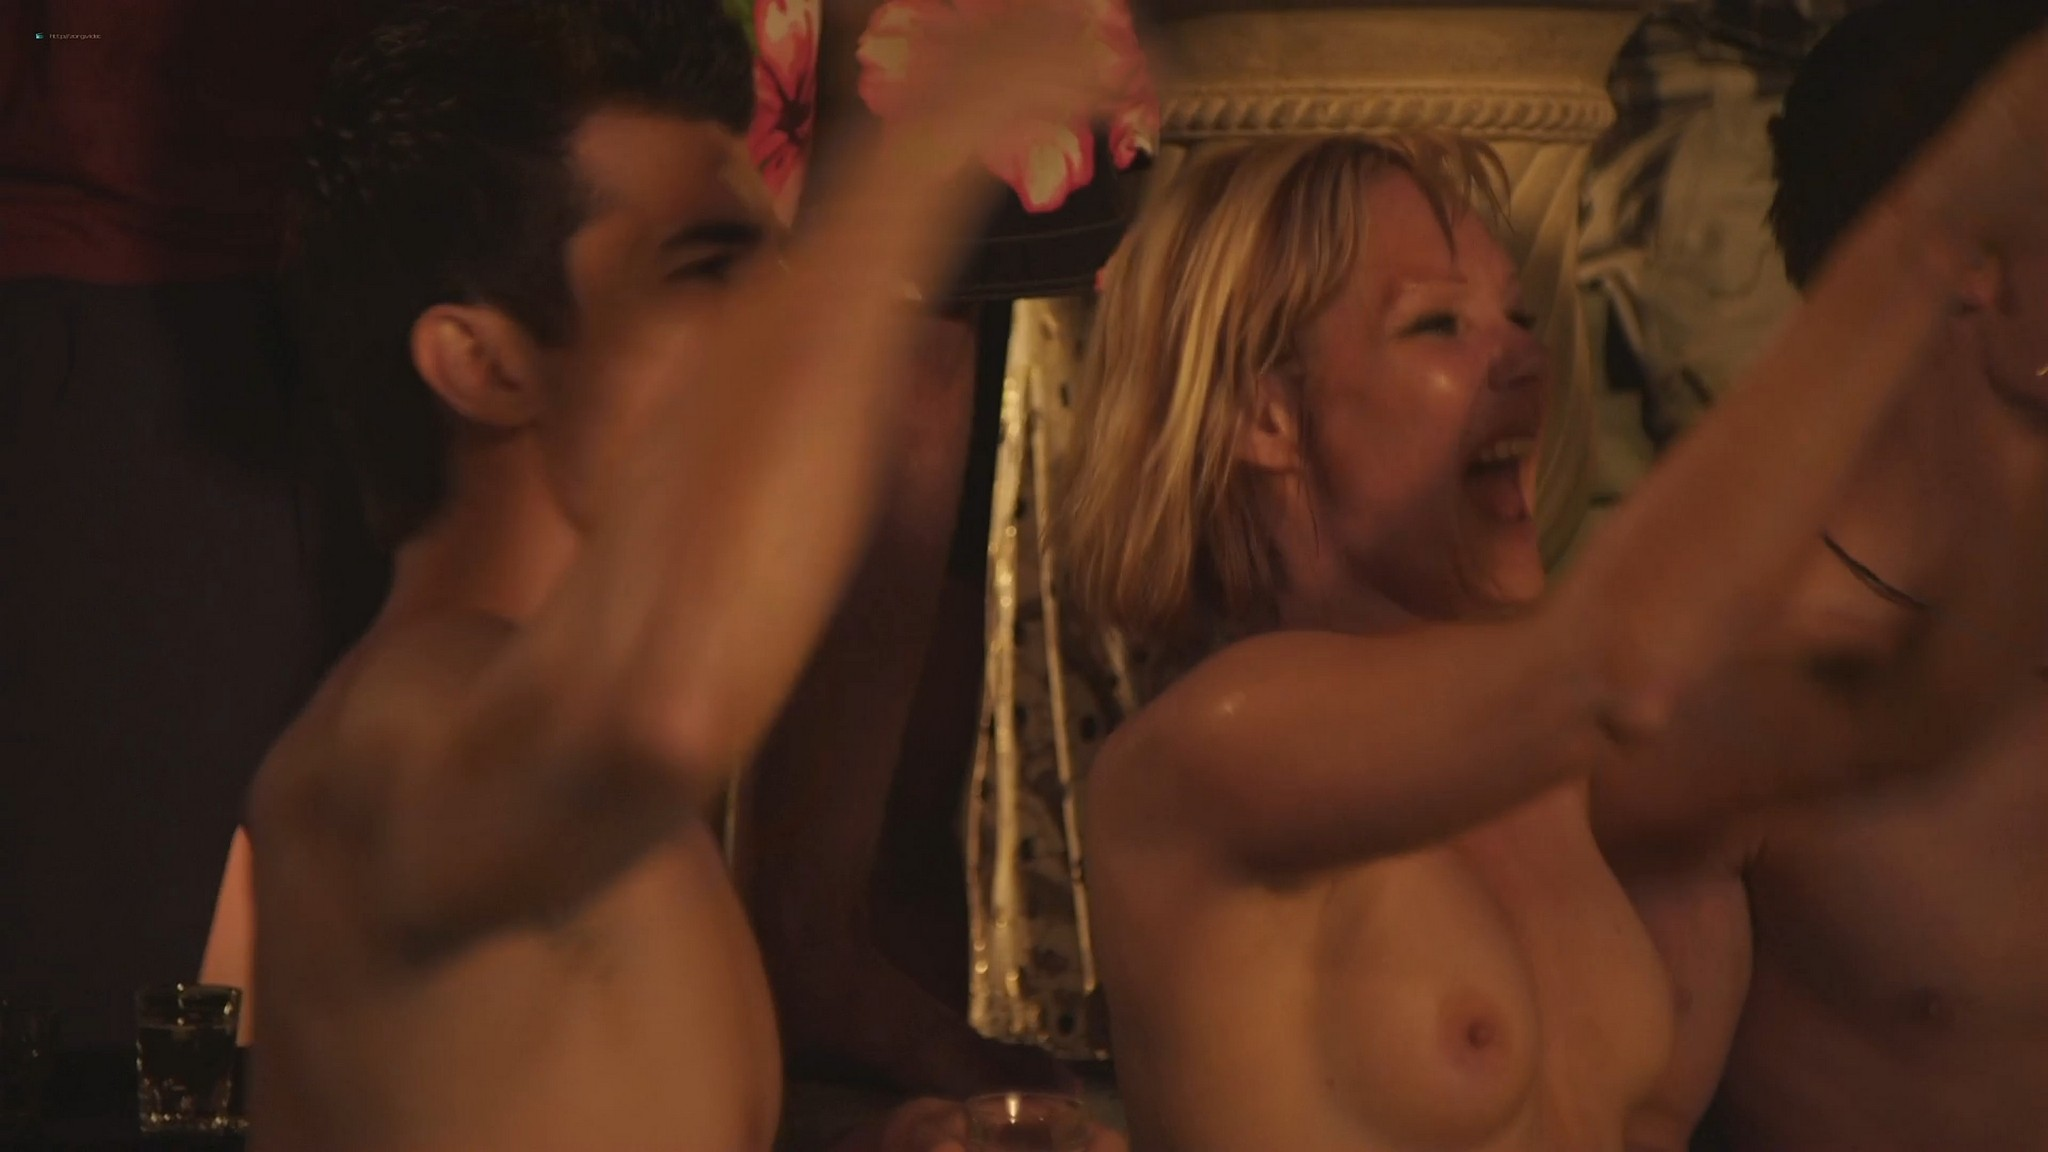 Virginia Williams hot Tammin Sursok Lucila Sola and others nude and sexy 10 Rules for Sleeping Around 2013 1080p BluRay REMUX 18